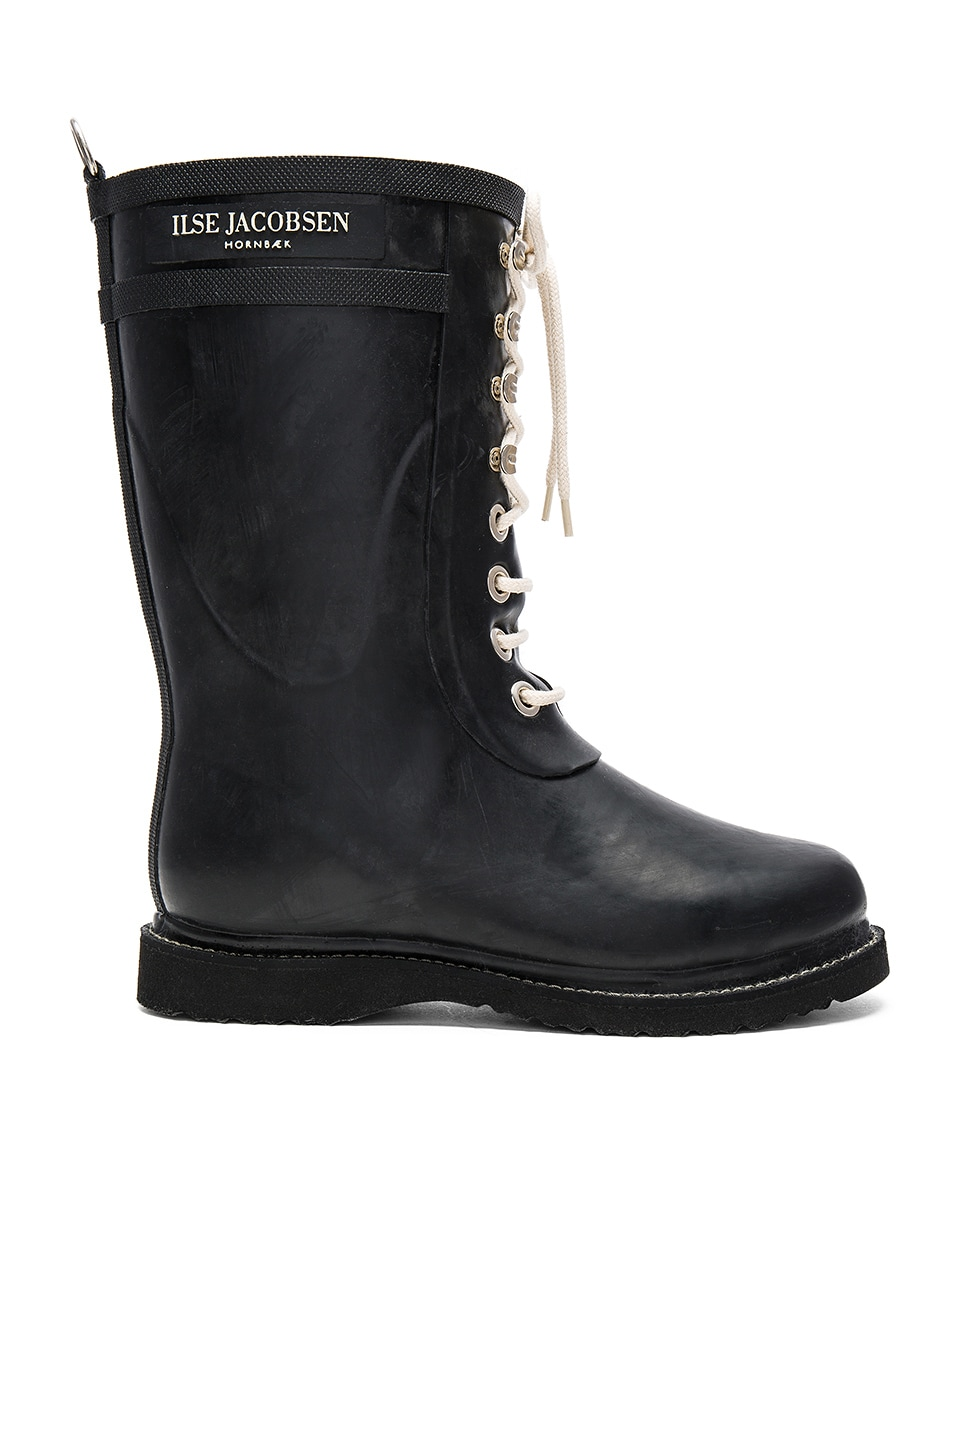 Always A Classic Mid Boot by ILSE JACOBSEN